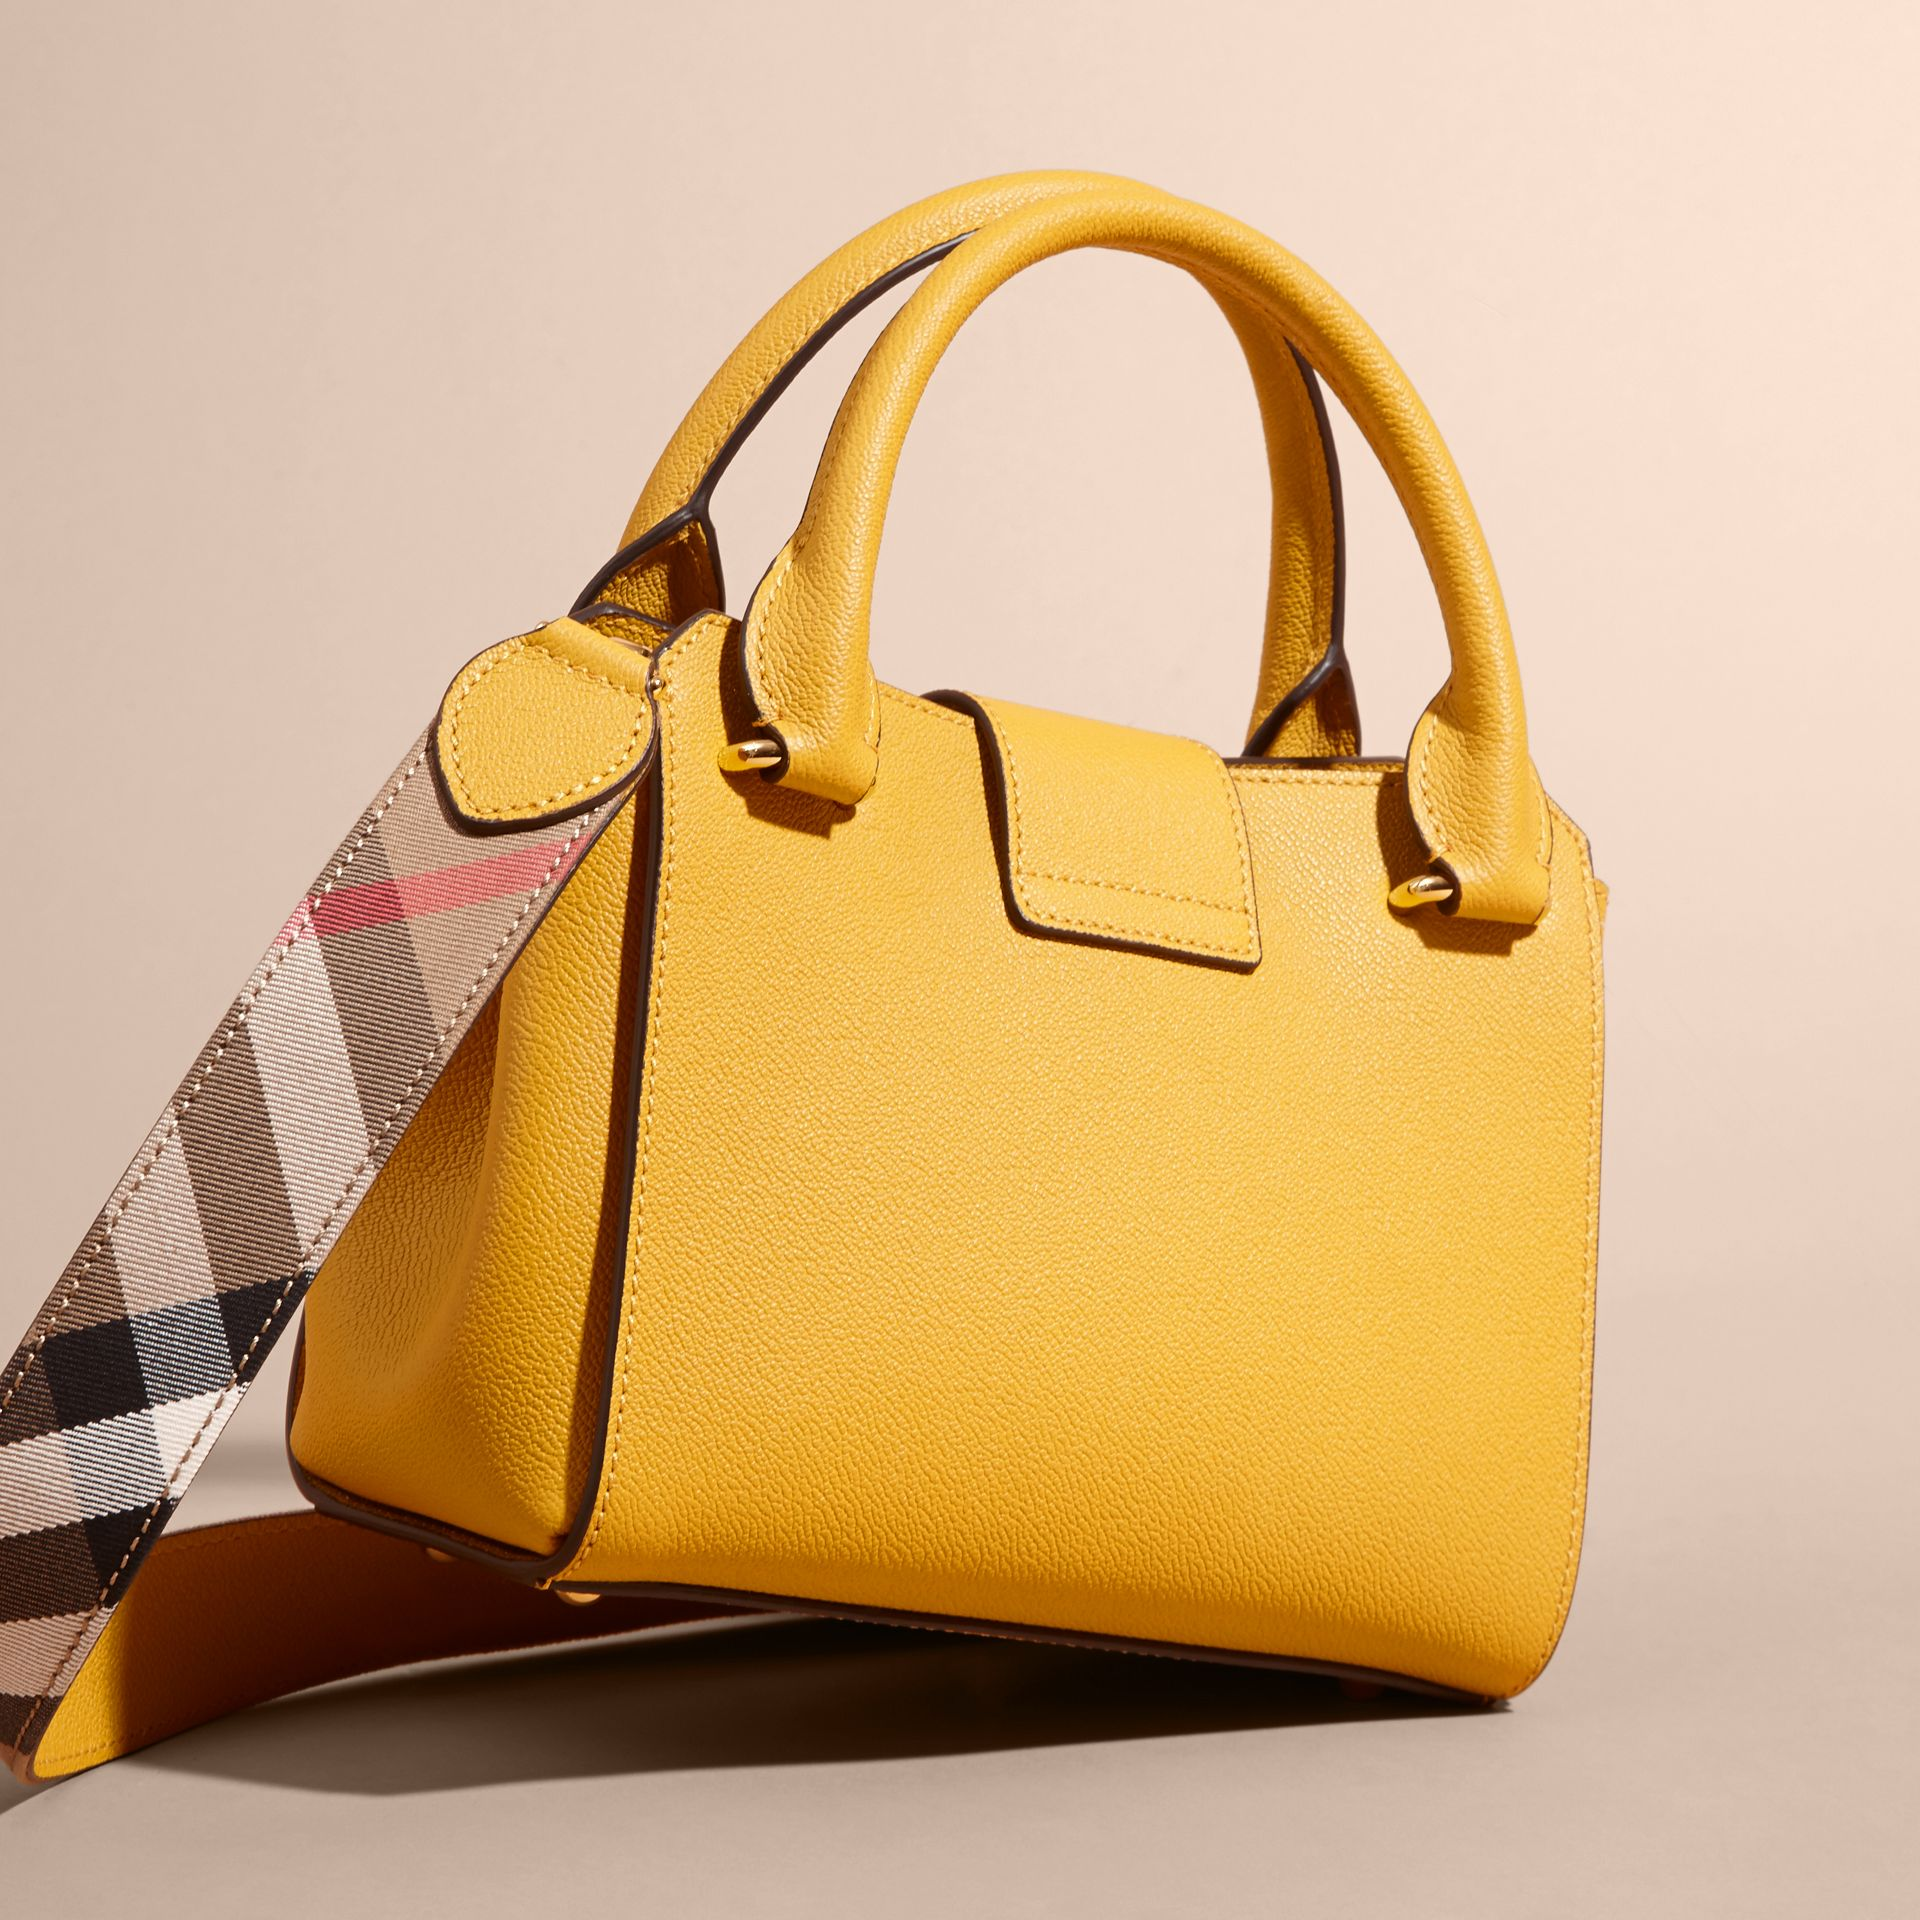 The Small Buckle Tote in Grainy Leather in Bright Straw - Women | Burberry - gallery image 5